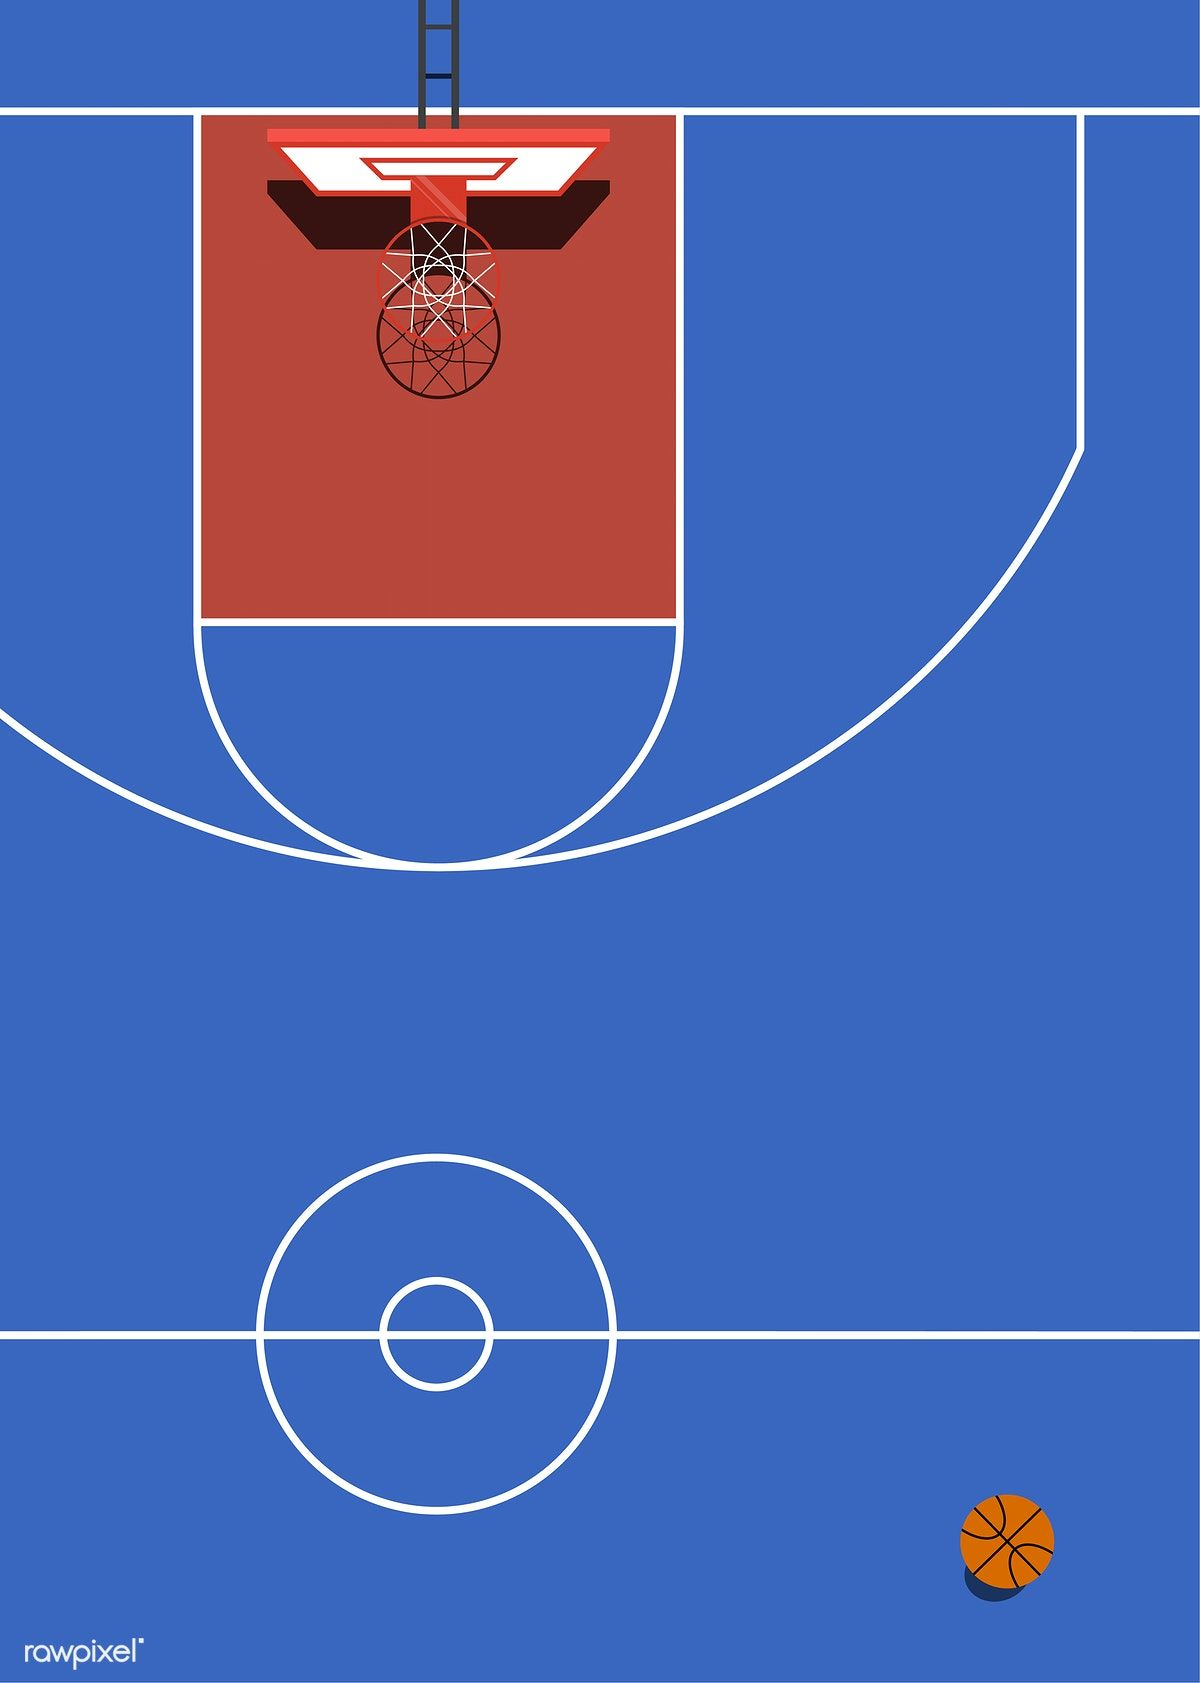 Aerial View Of A Basketball Court Free Image By Rawpixel Com Adobe Illustrator Graphic Design Mood Board Design Sport Illustration